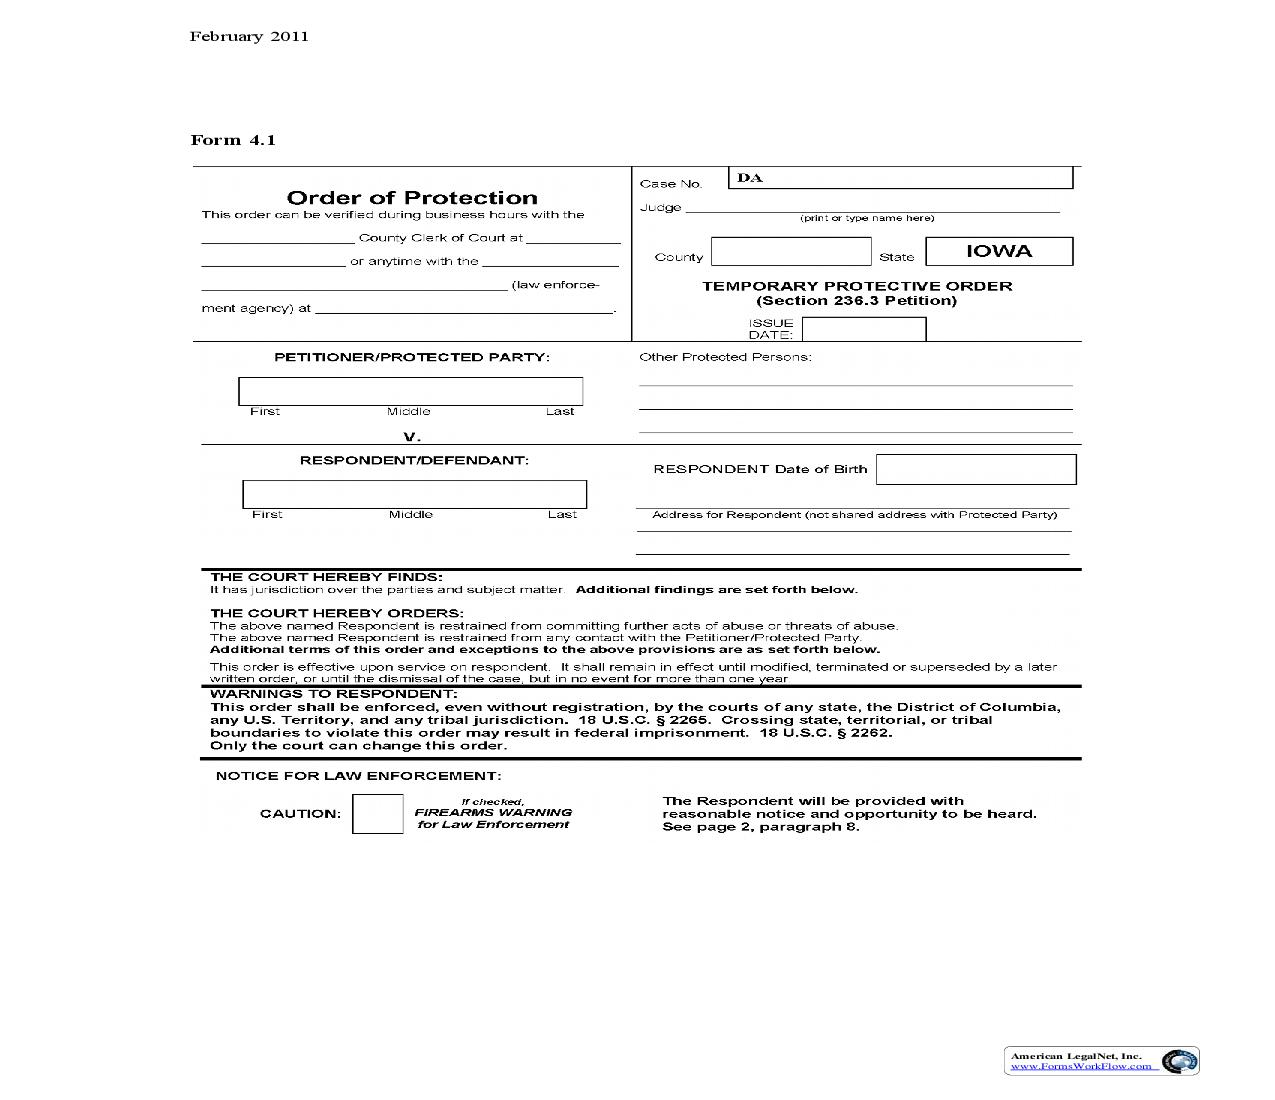 Temporary Protective Order (Section 236.3 Petition) {4.1} | Pdf Fpdf Doc Docx | Iowa